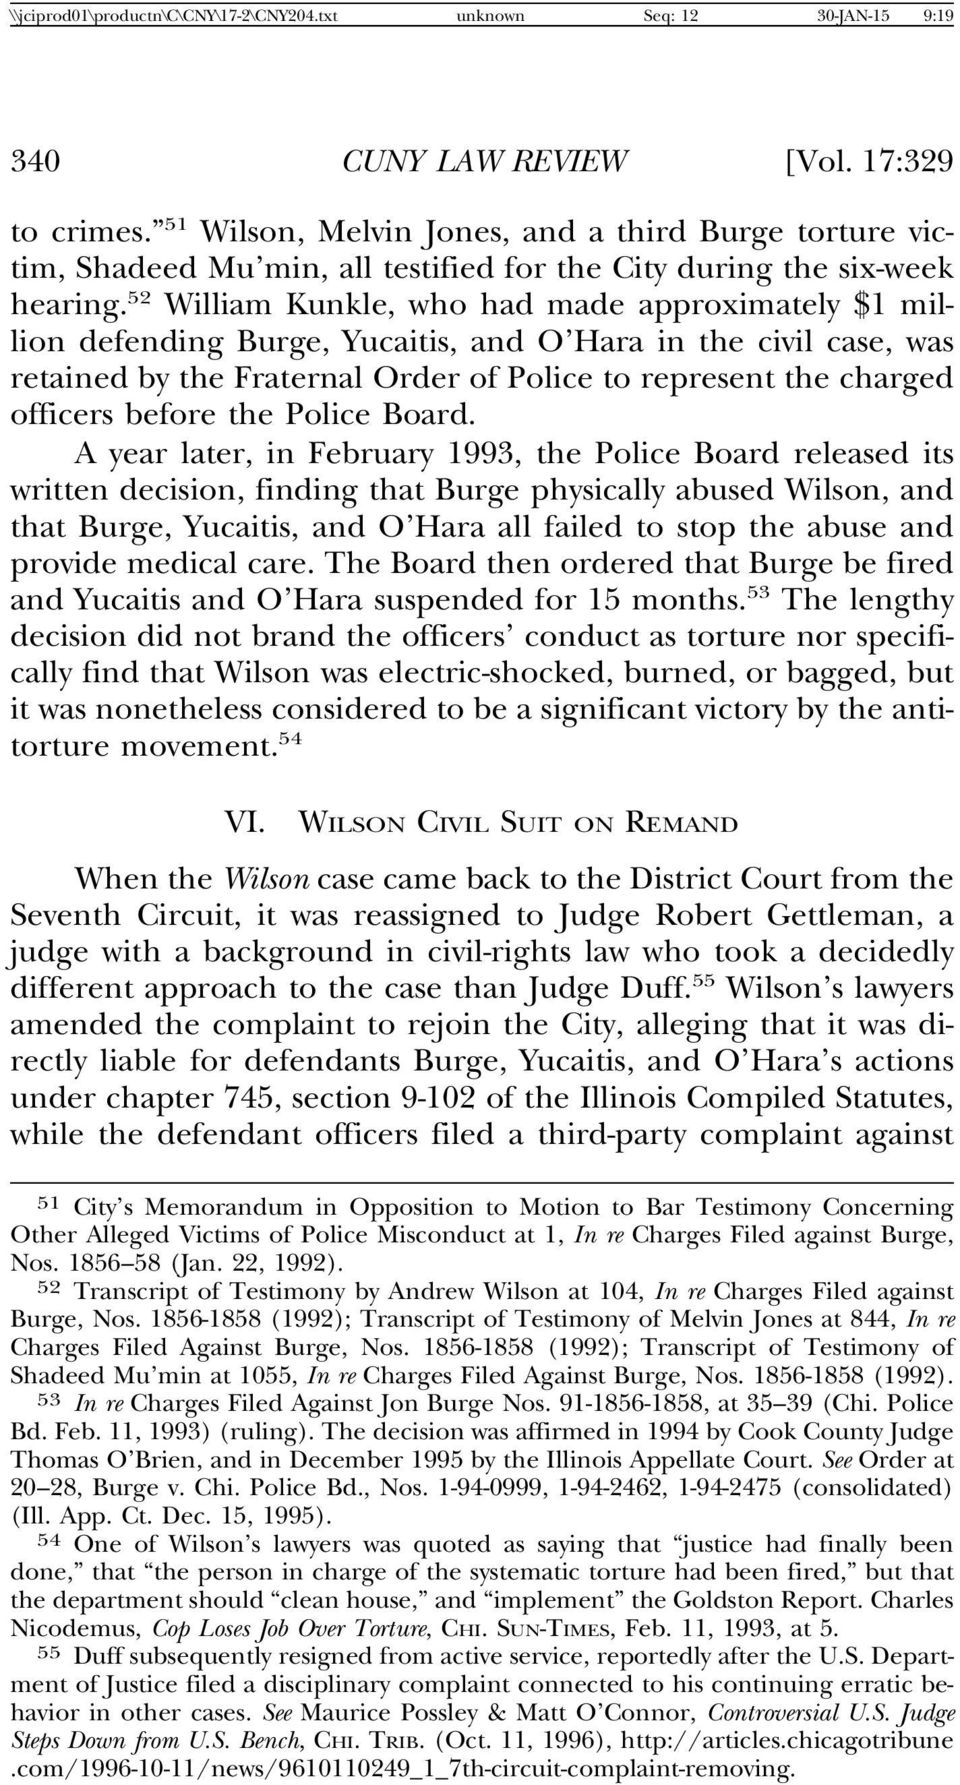 52 William Kunkle, who had made approximately $1 million defending Burge, Yucaitis, and O Hara in the civil case, was retained by the Fraternal Order of Police to represent the charged officers